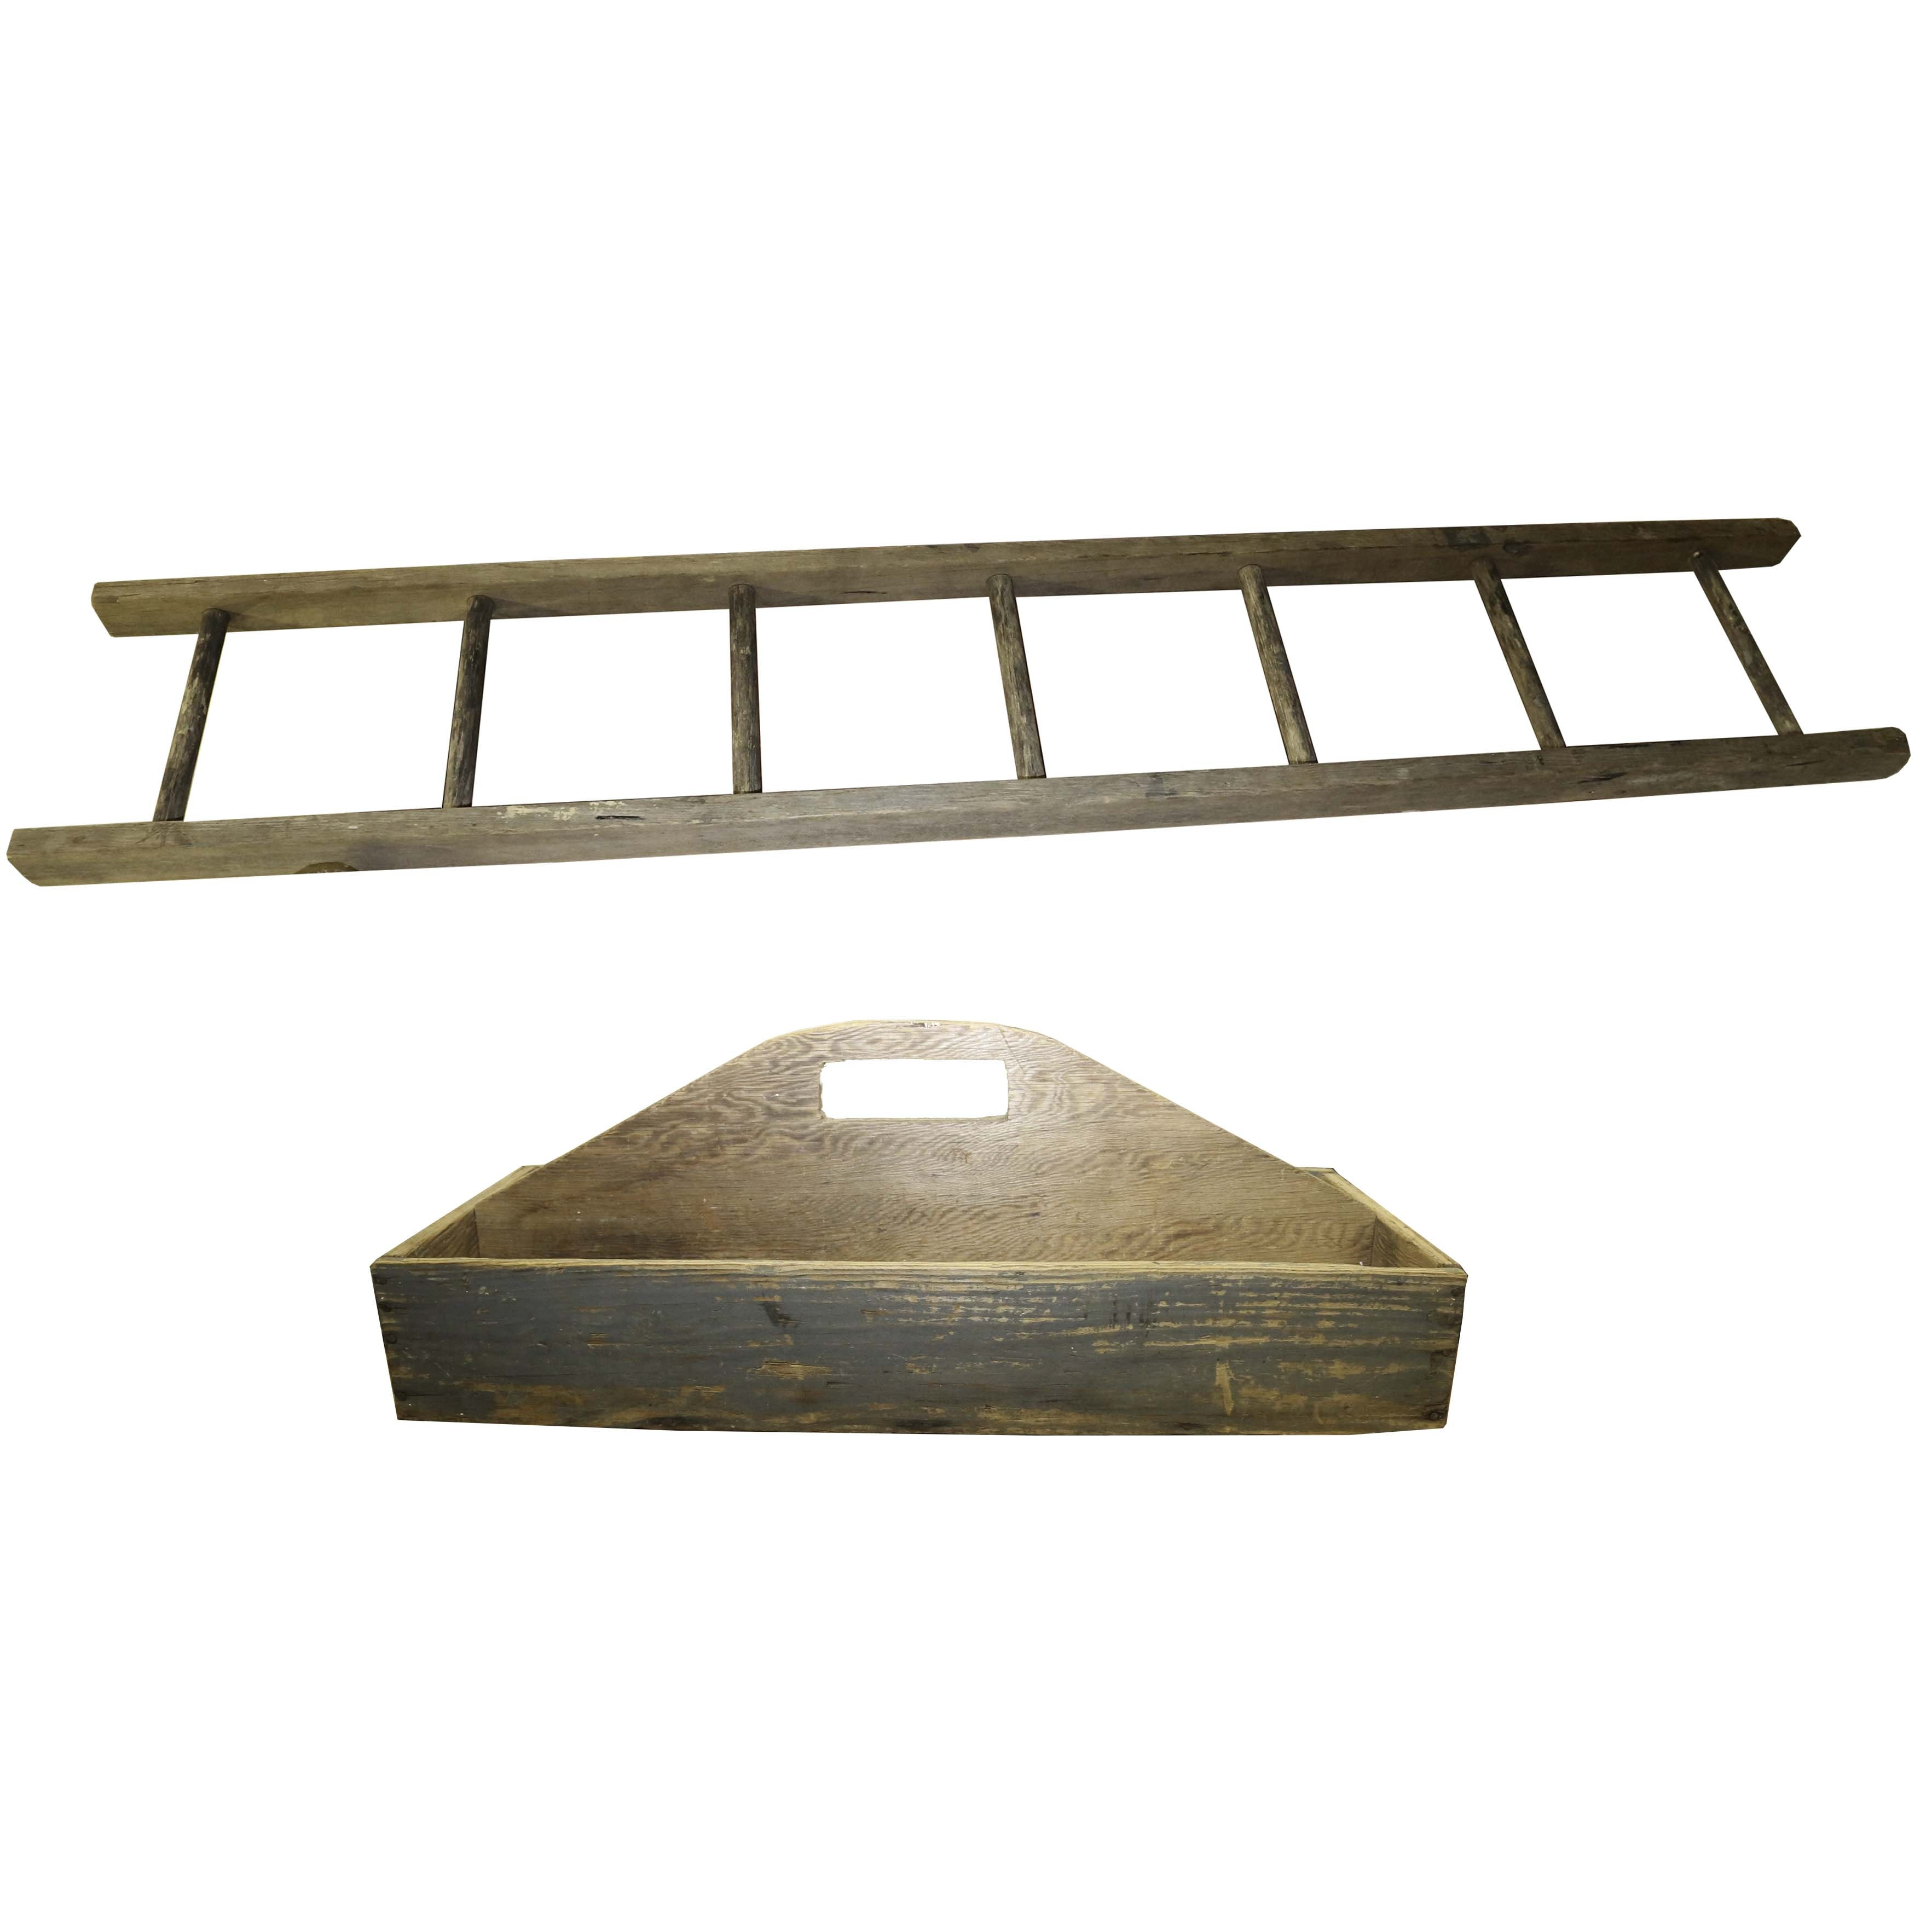 Antique Ladder and Tool Tray